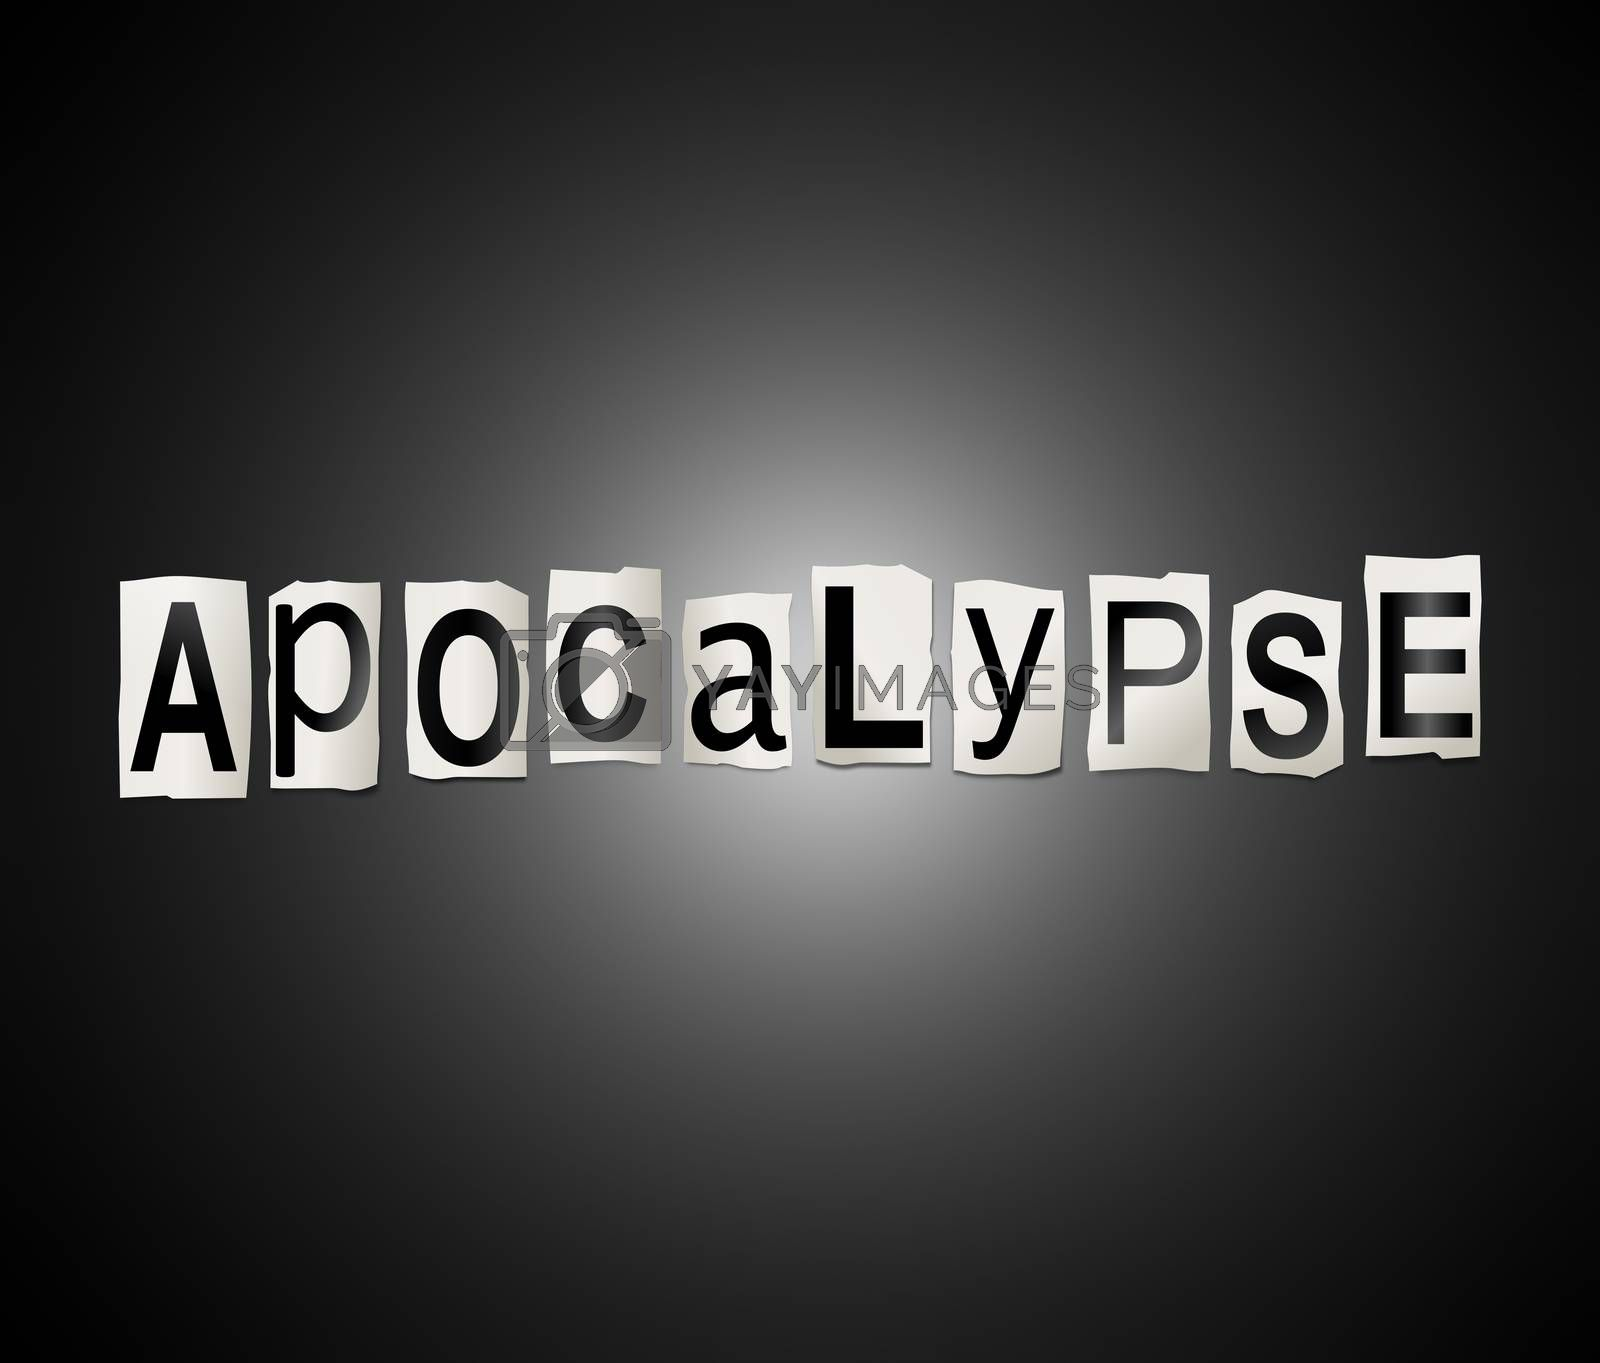 Illustration depicting a set of cut out printed letters arranged to form the word apocalypse.